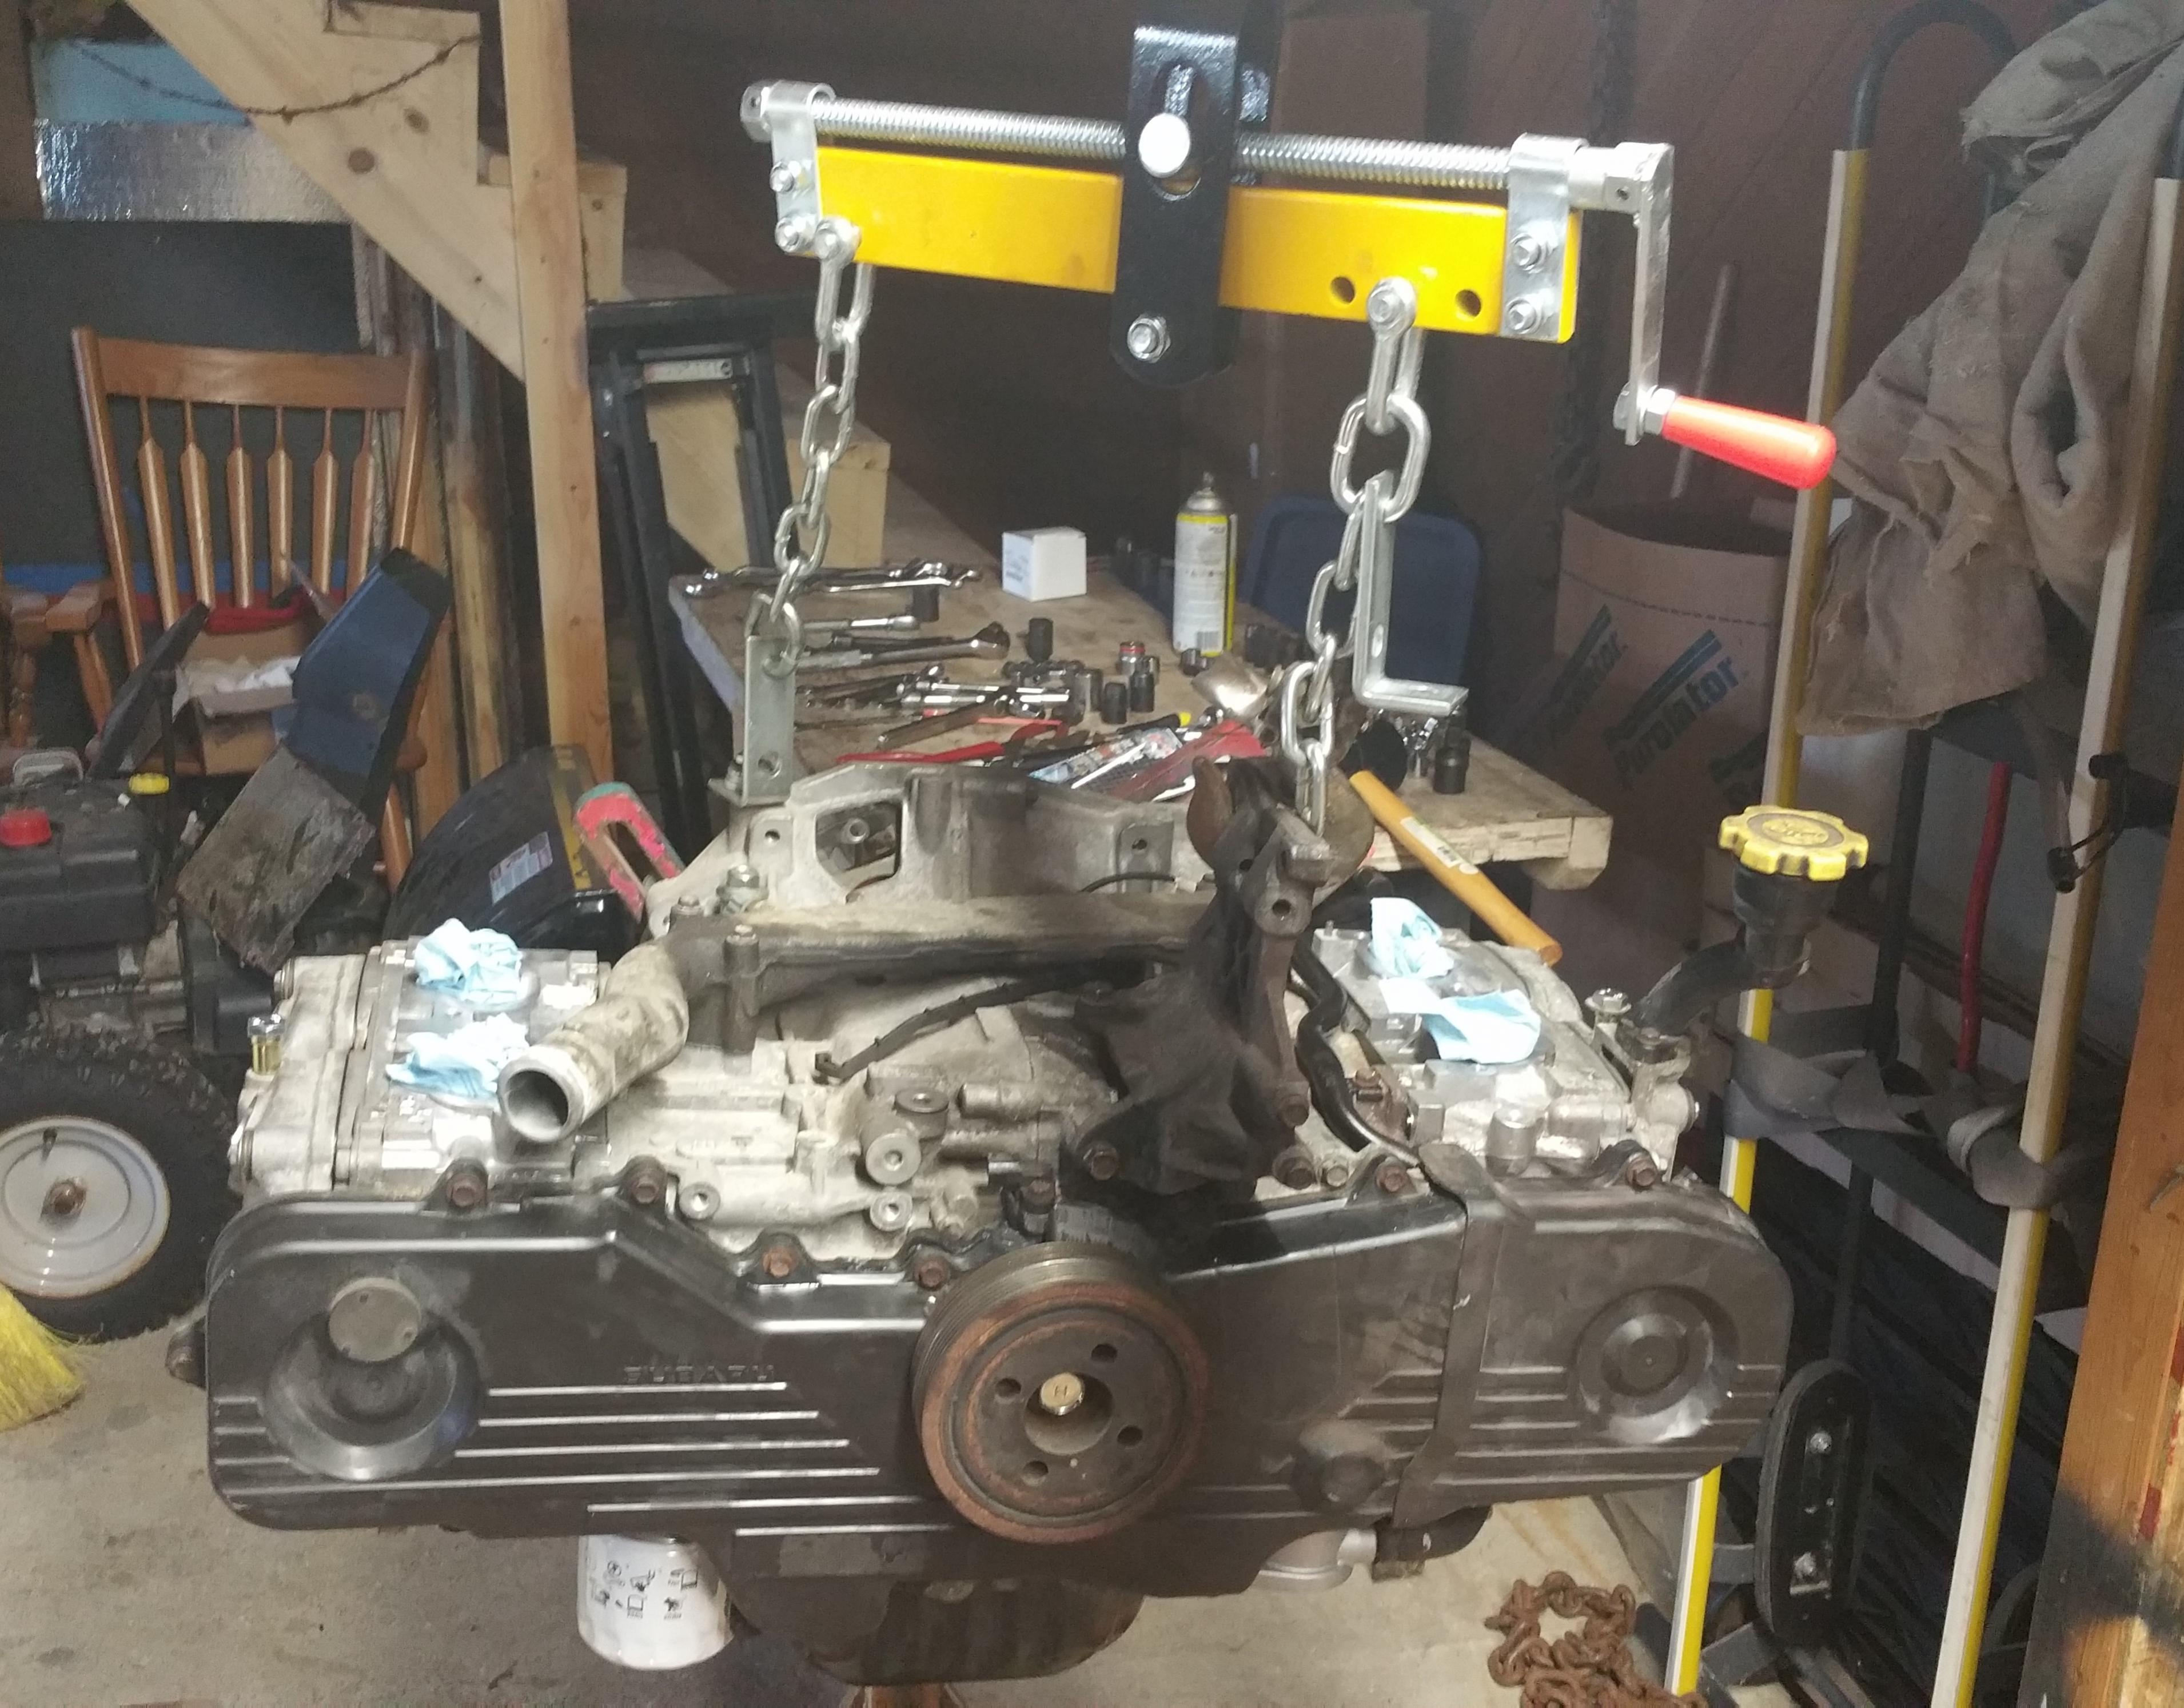 P0302 and P0420 code question   Subaru Outback Forums